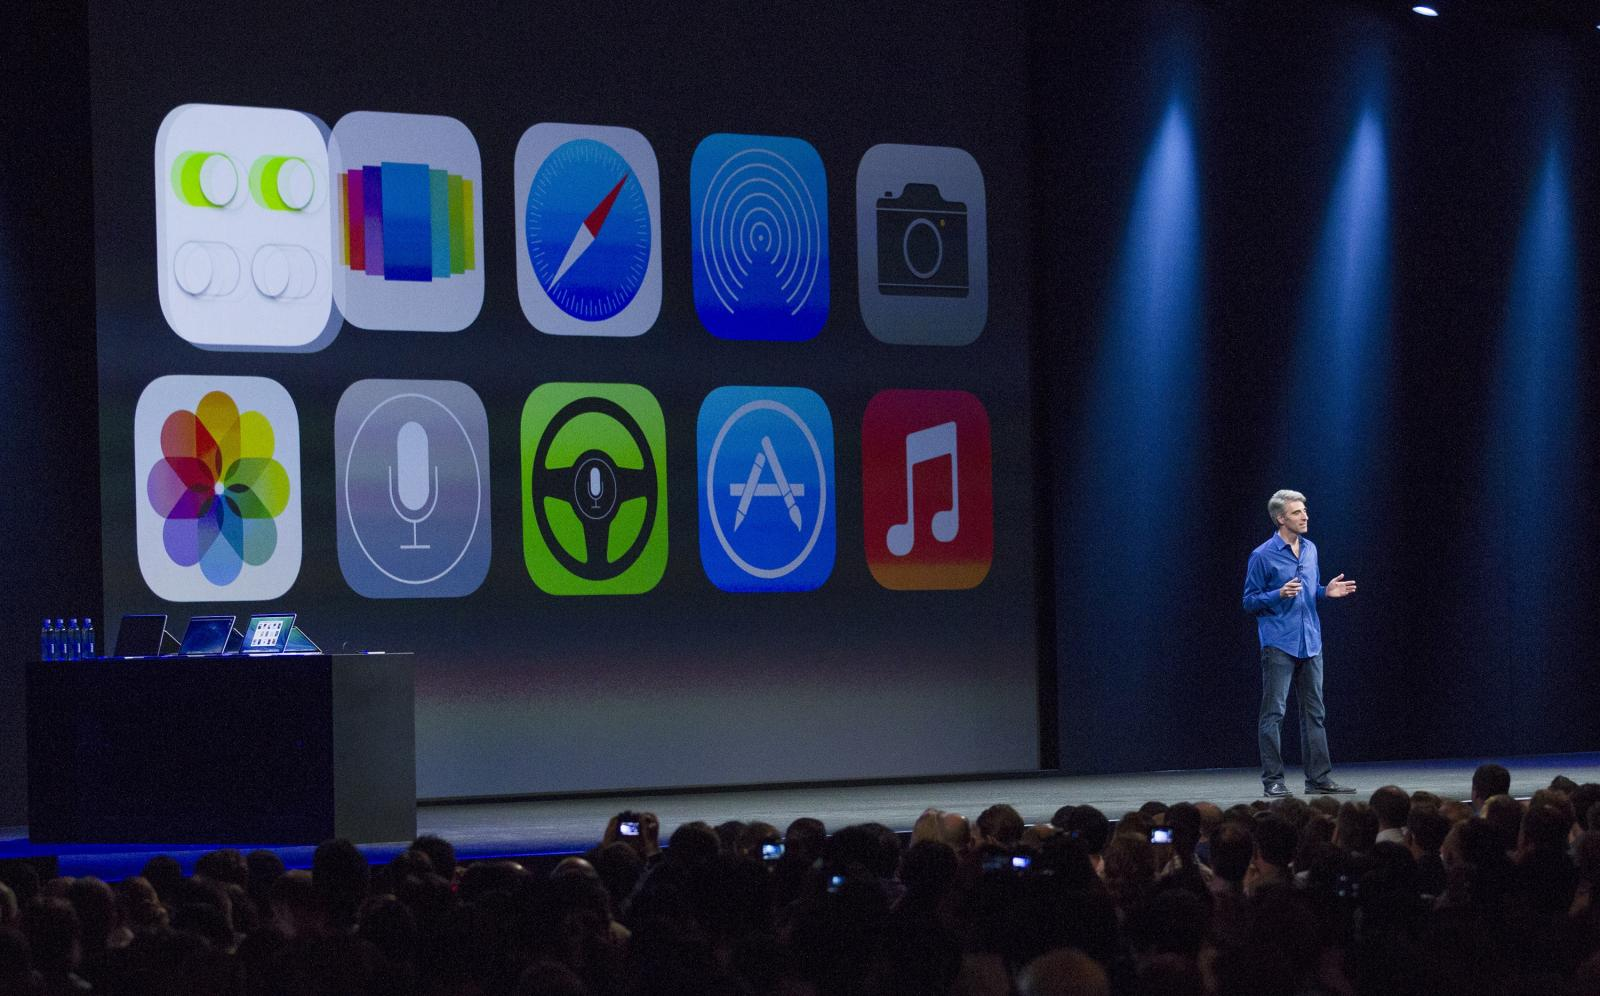 Apple confirms WWDC 2014 keynote to be held Monday, June 2nd at 10 AM PT; new hardware likely